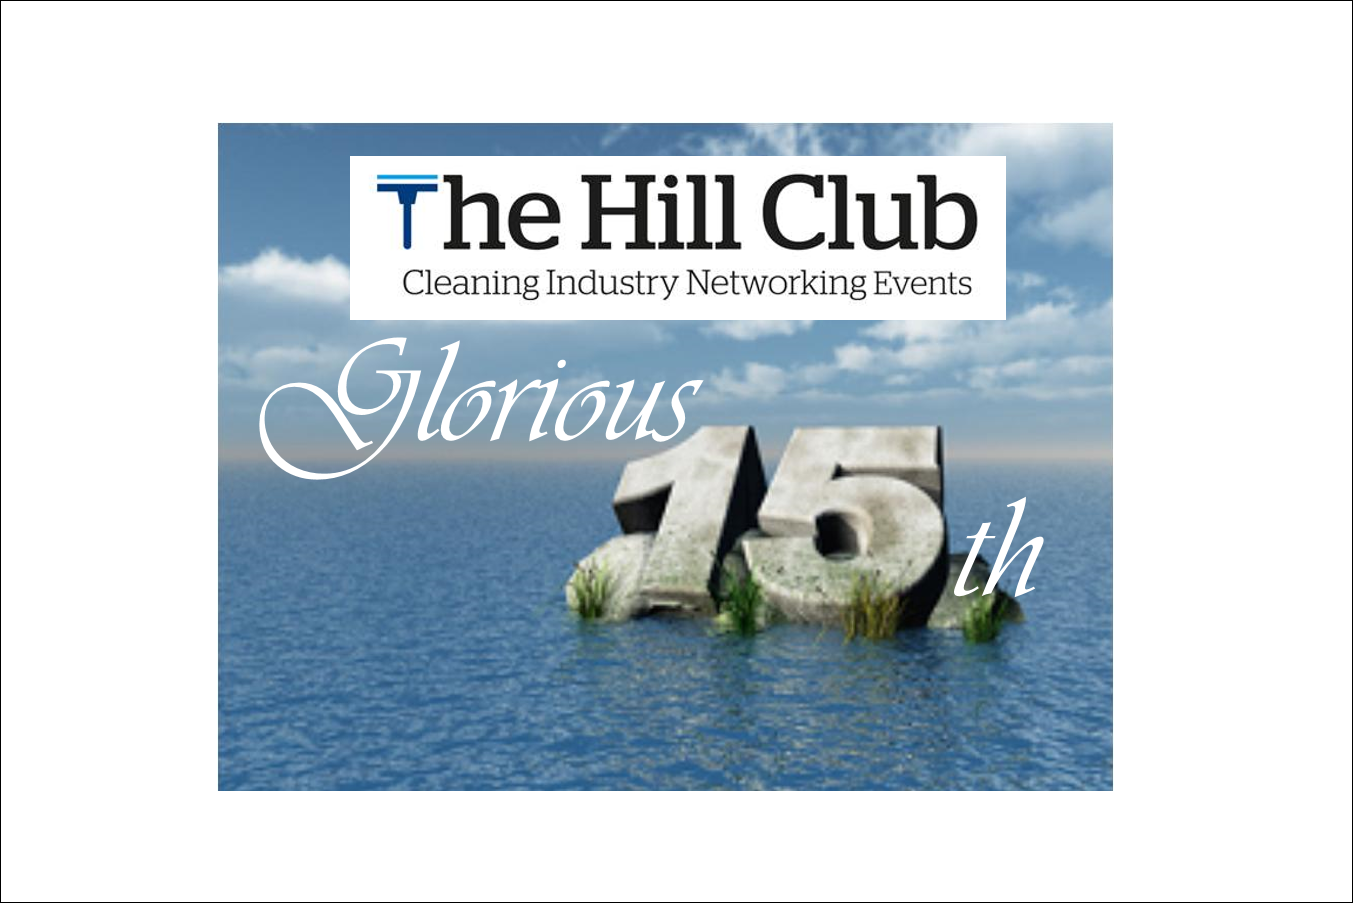 The Hill Club - Glorious Fifteenth Networking Event